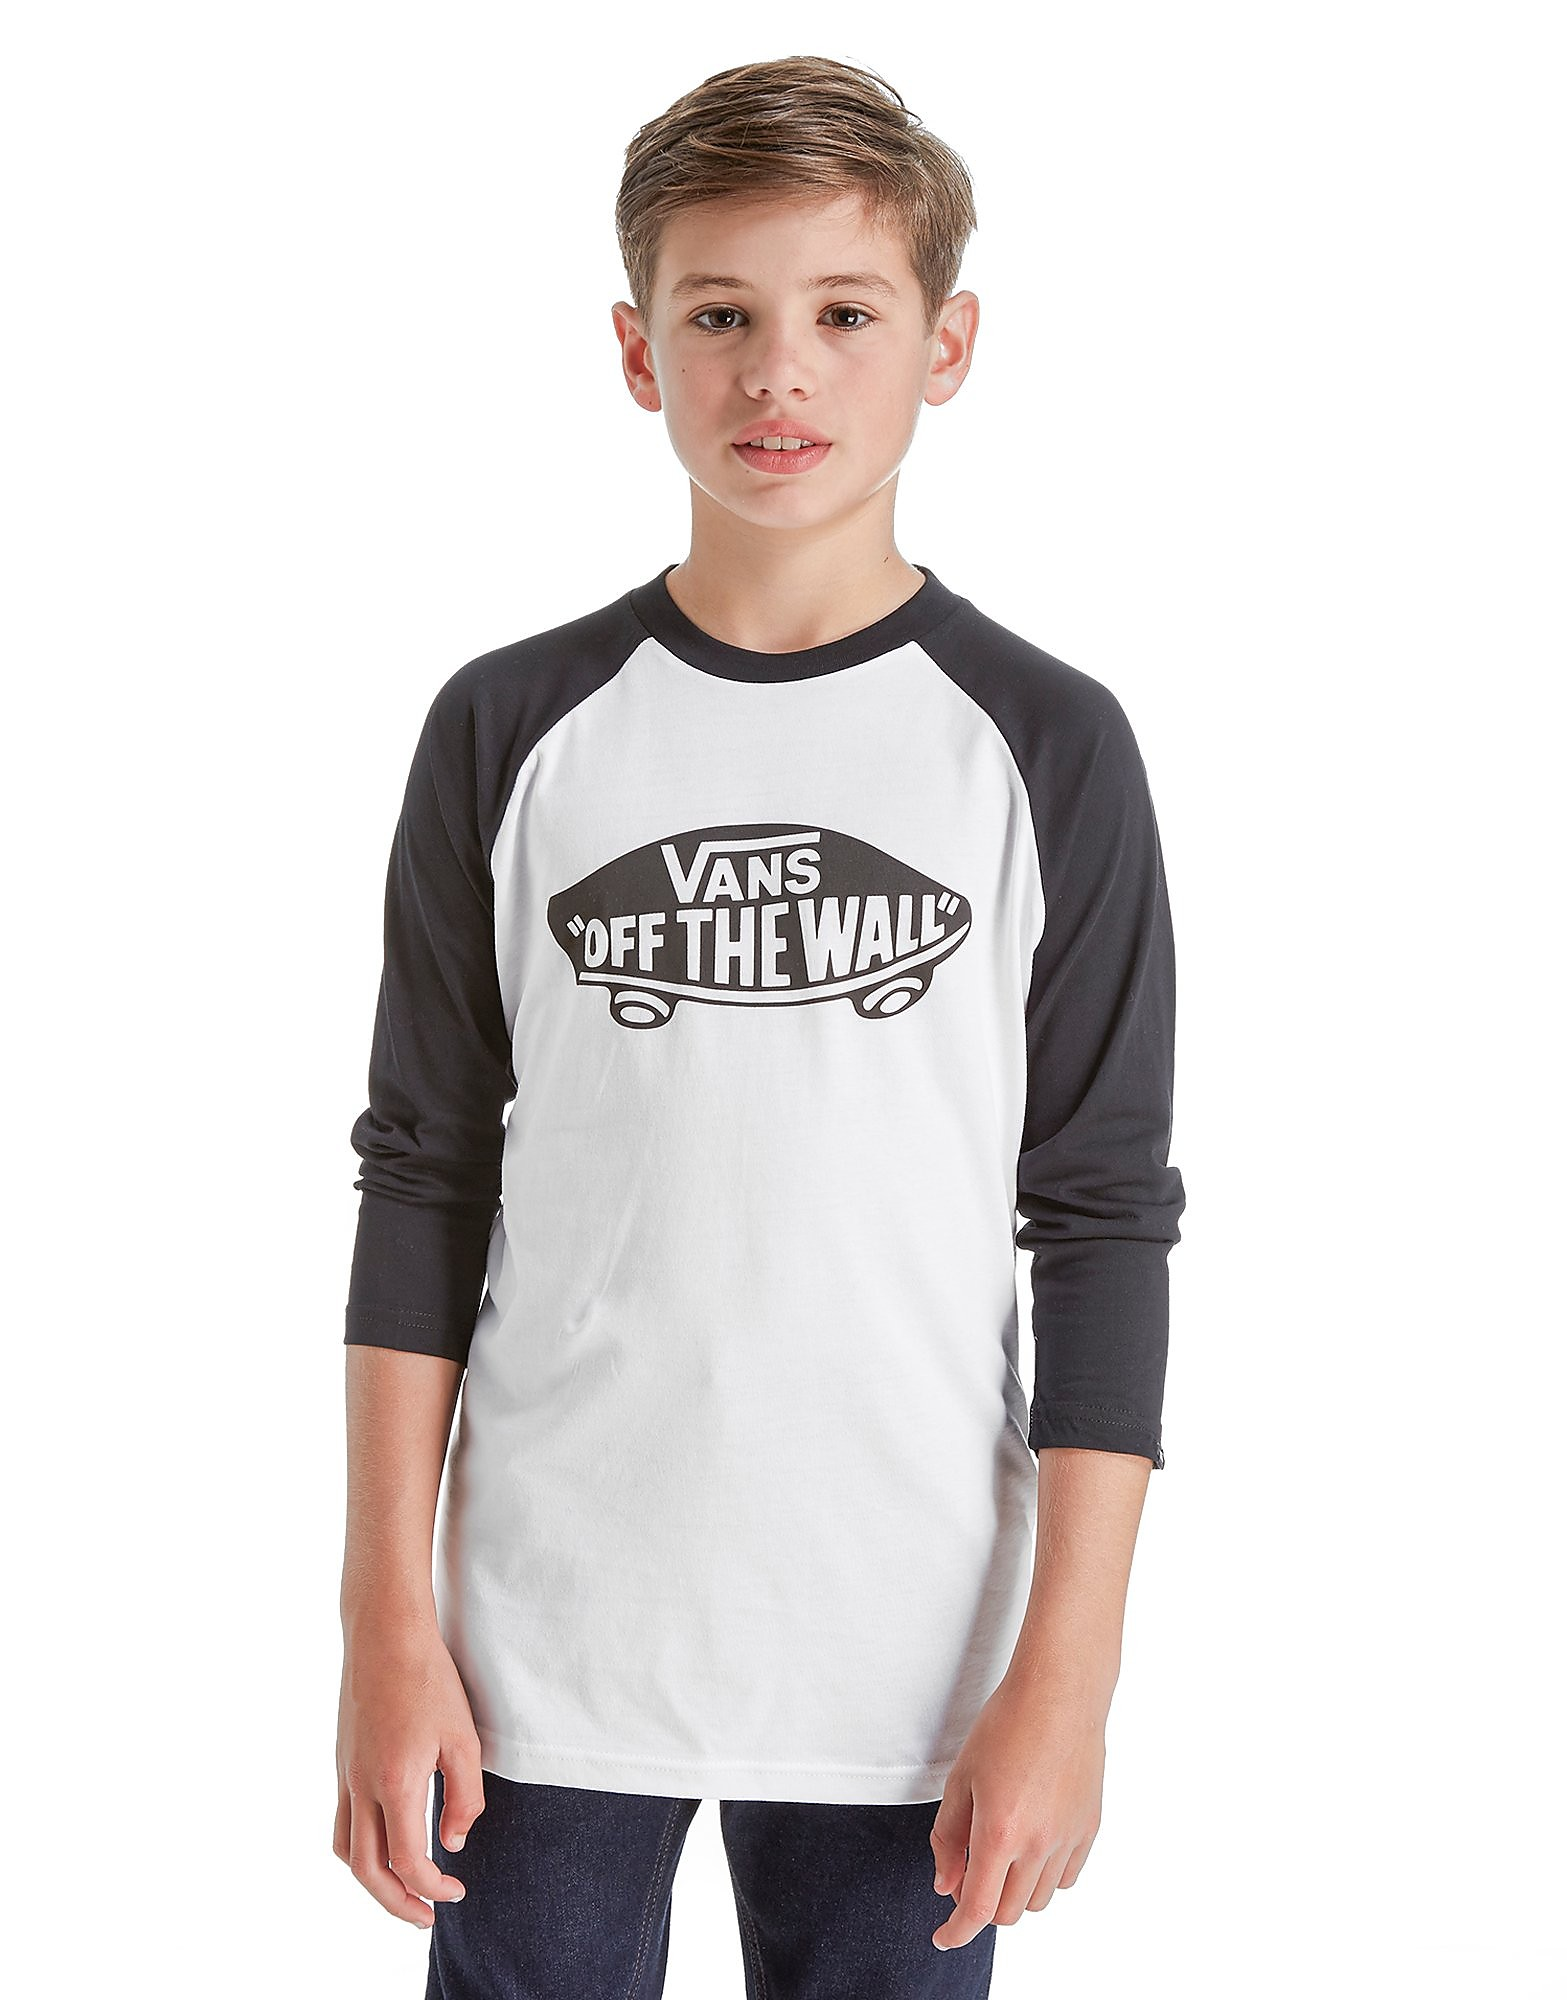 Vans Off The Wall Raglan Sleeve T-Shirt Junior